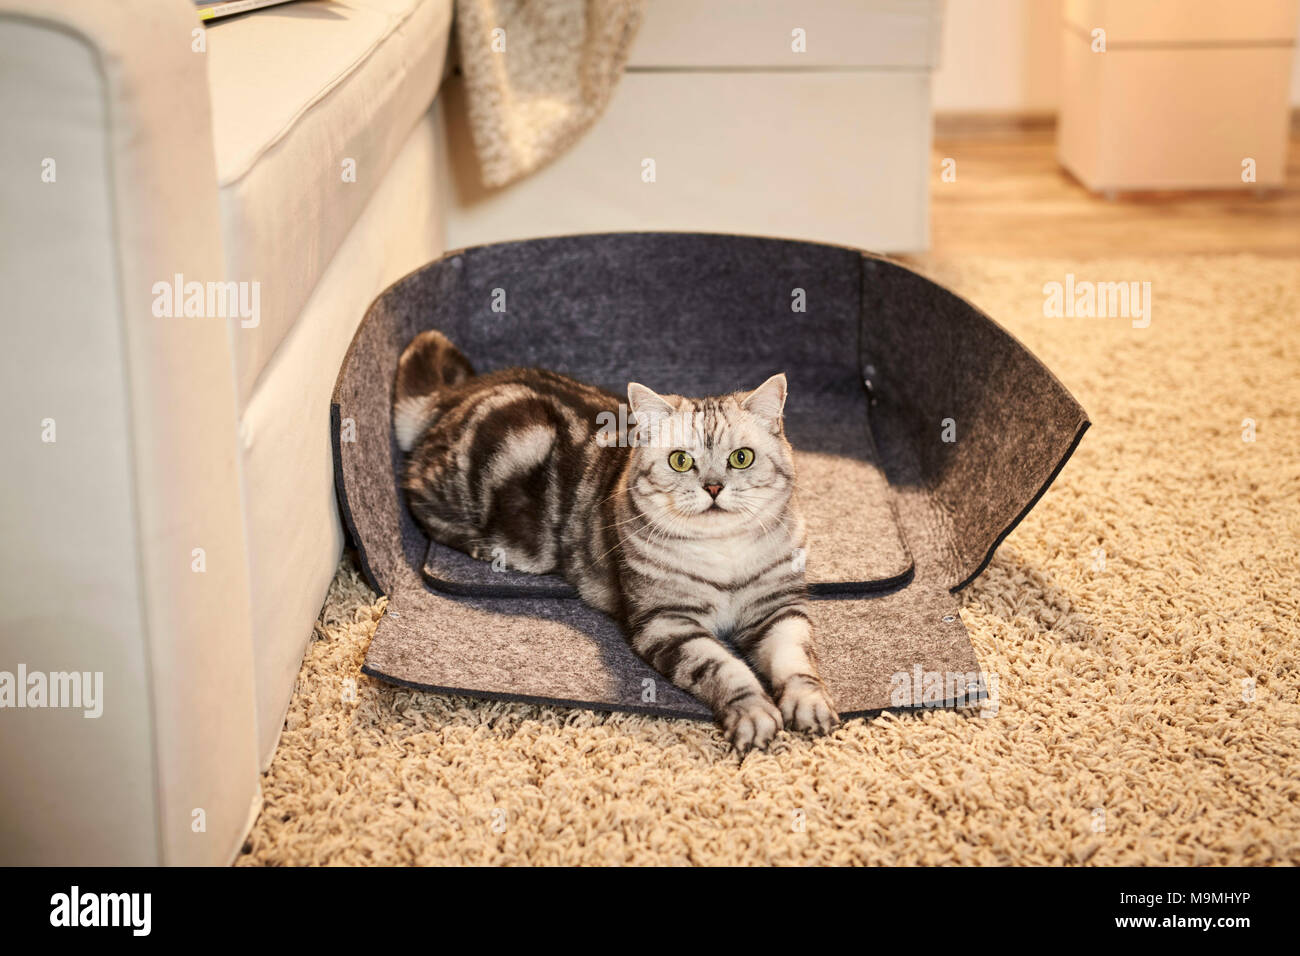 British Shorthair cat. Tabby adult lying in an opened pet bed made of felt. Germany Stock Photo